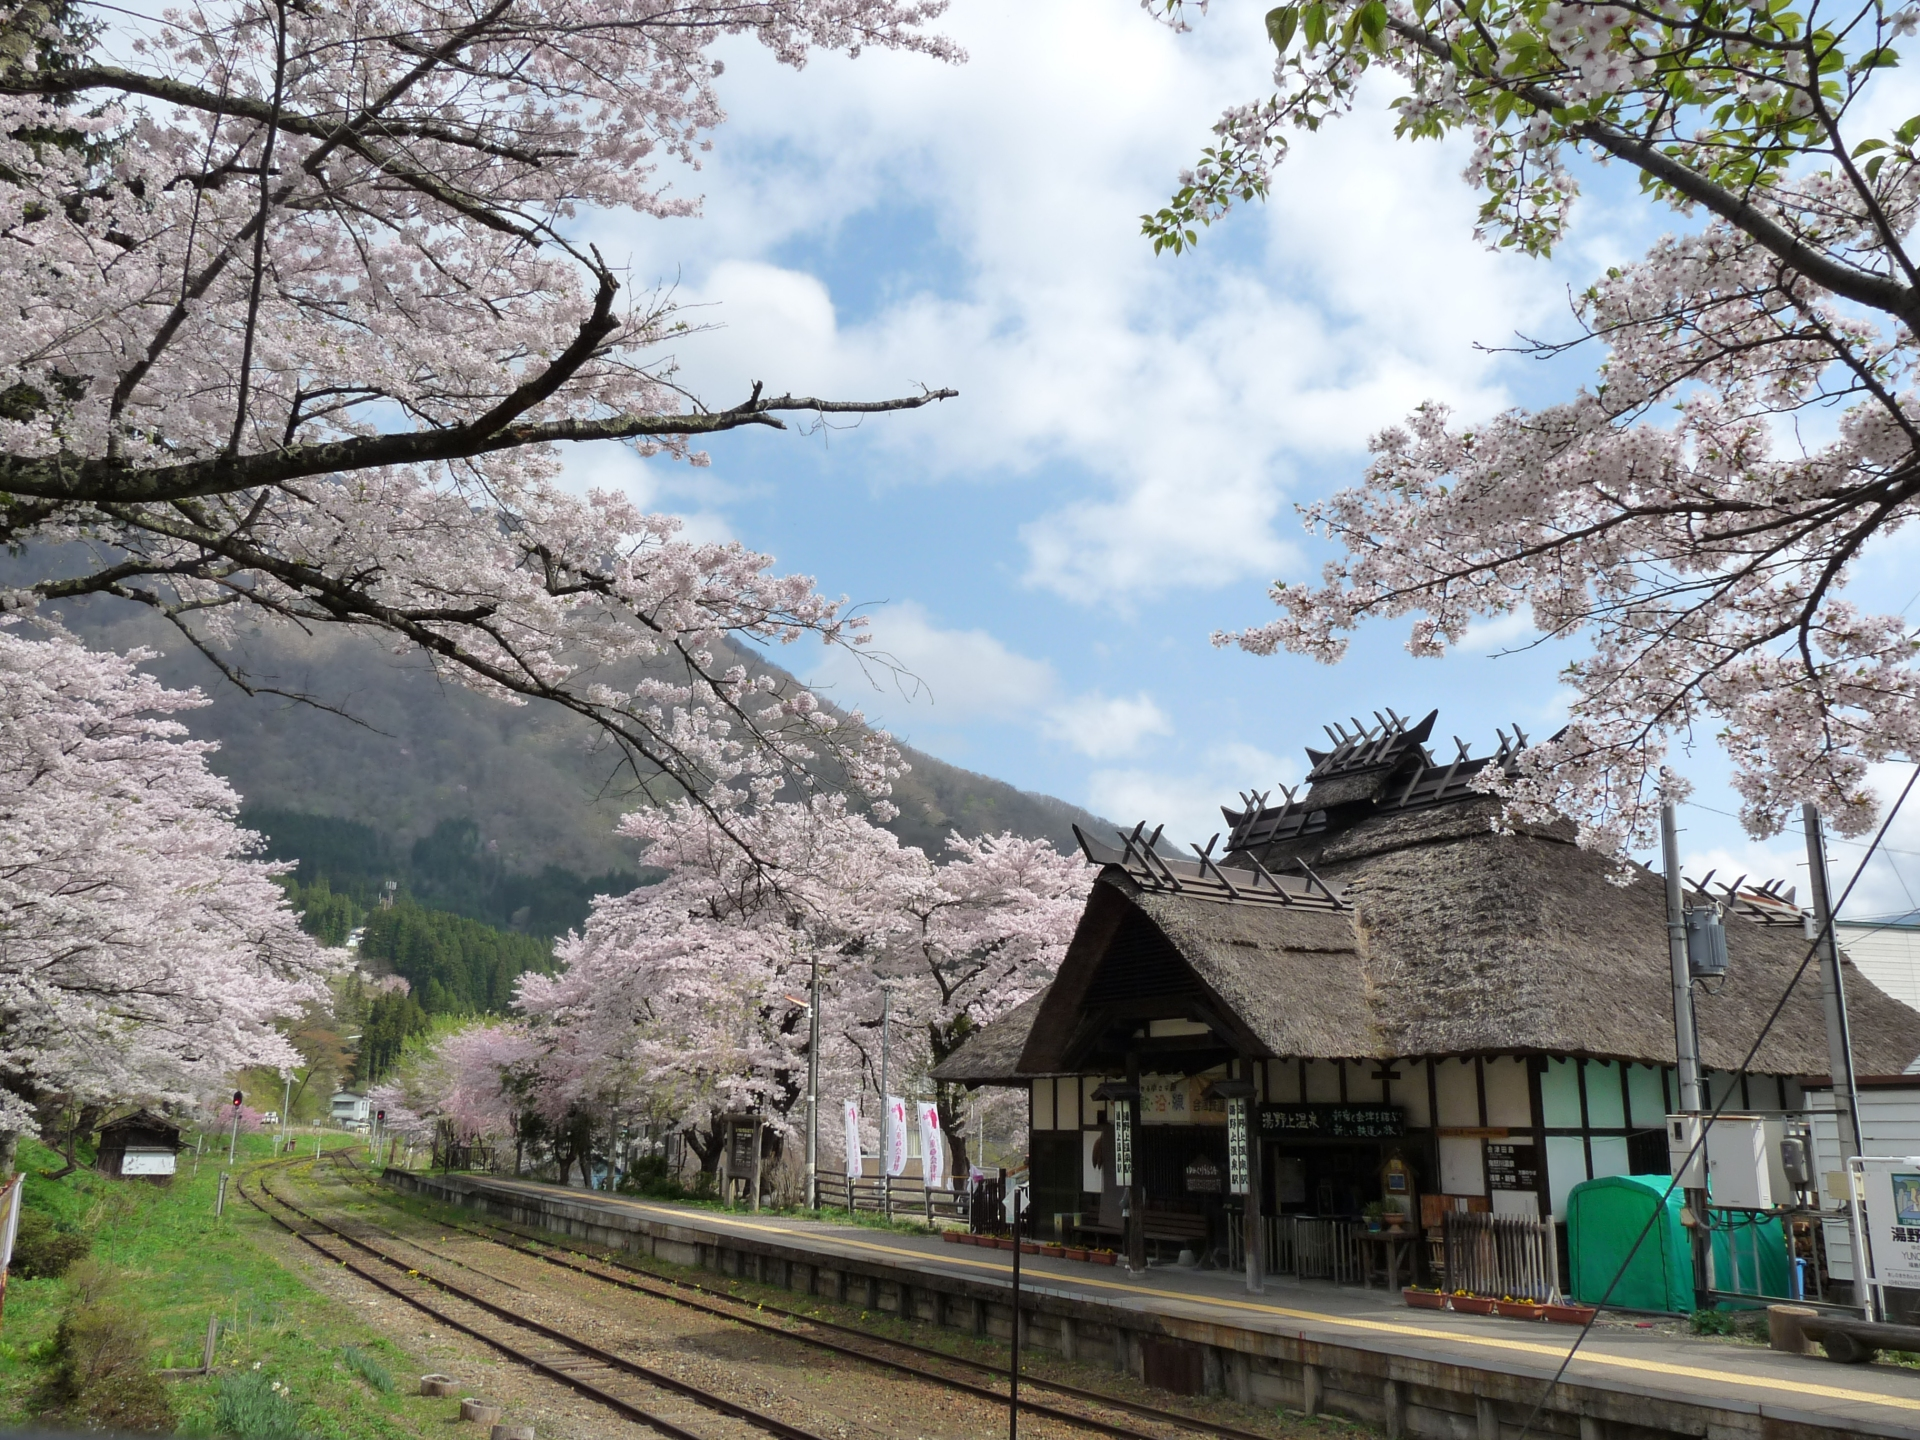 Cherry blossoms and a thatched station in Fukushima